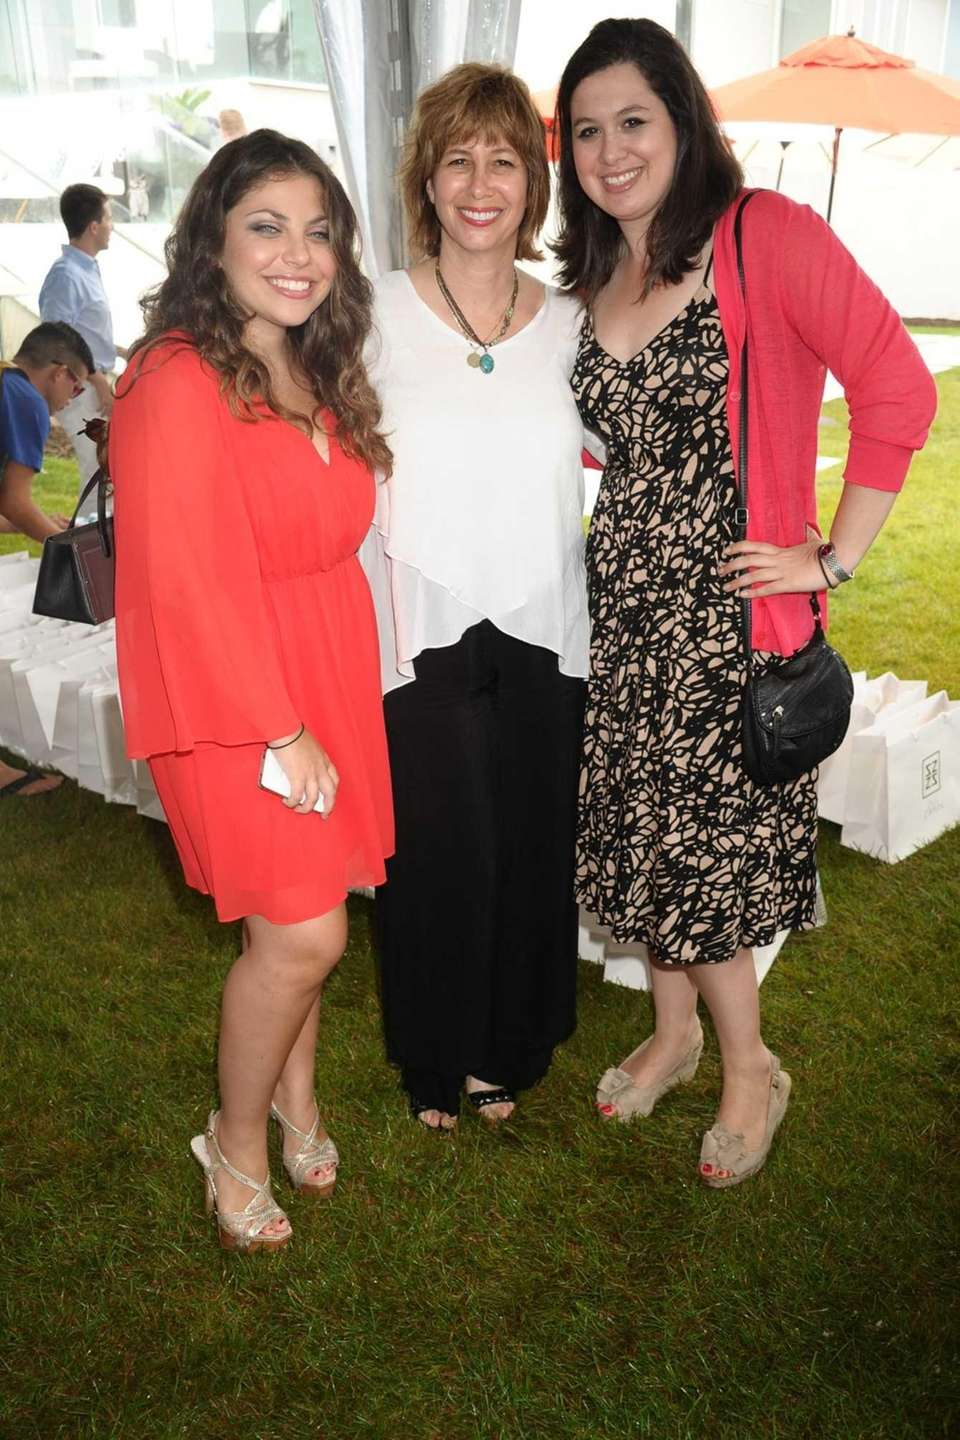 From left, Ally Zarin, Lisa Wexler and Joanna